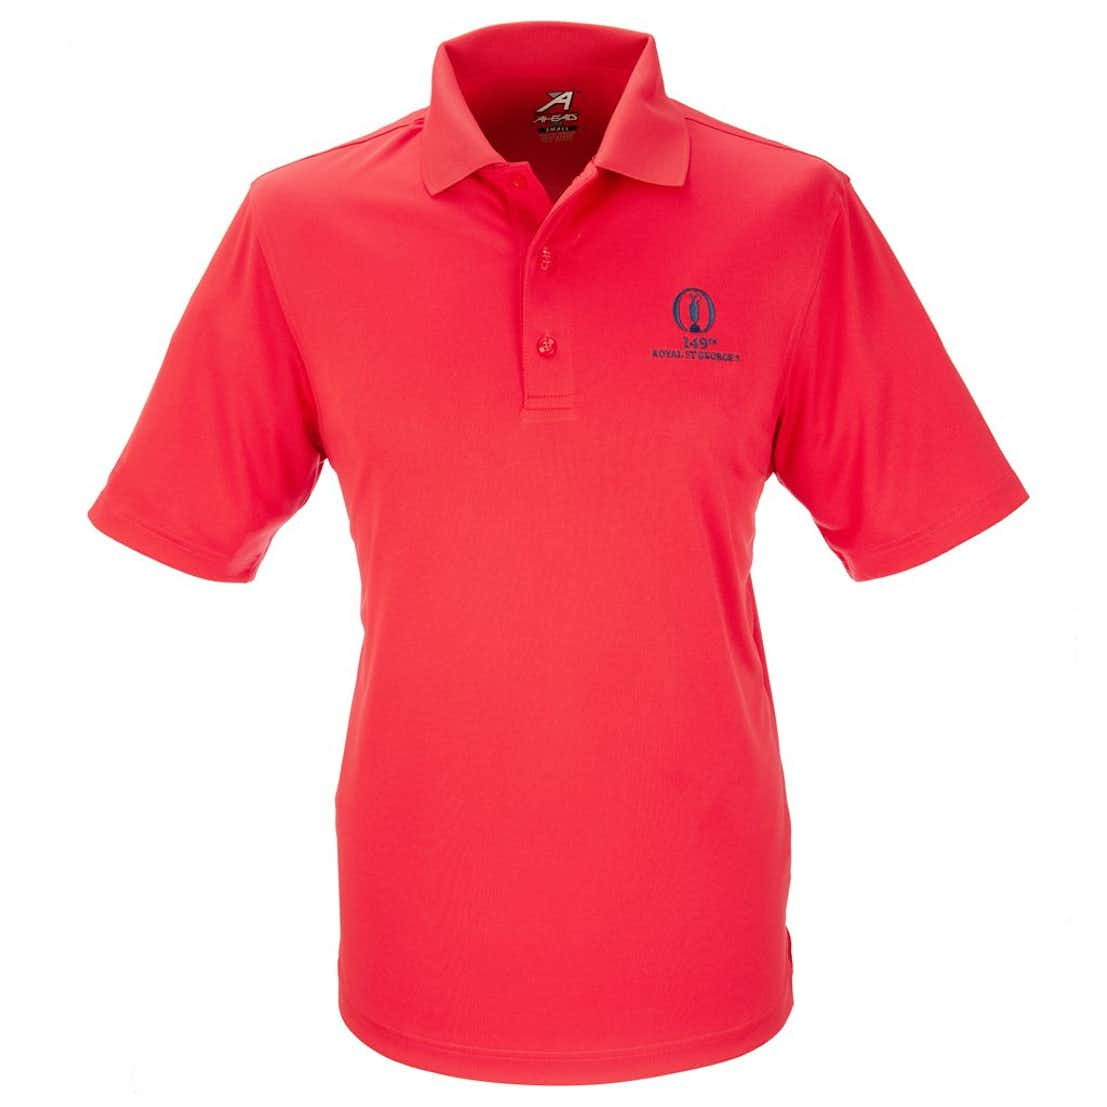 149th Royal St George's Plain Polo - Red